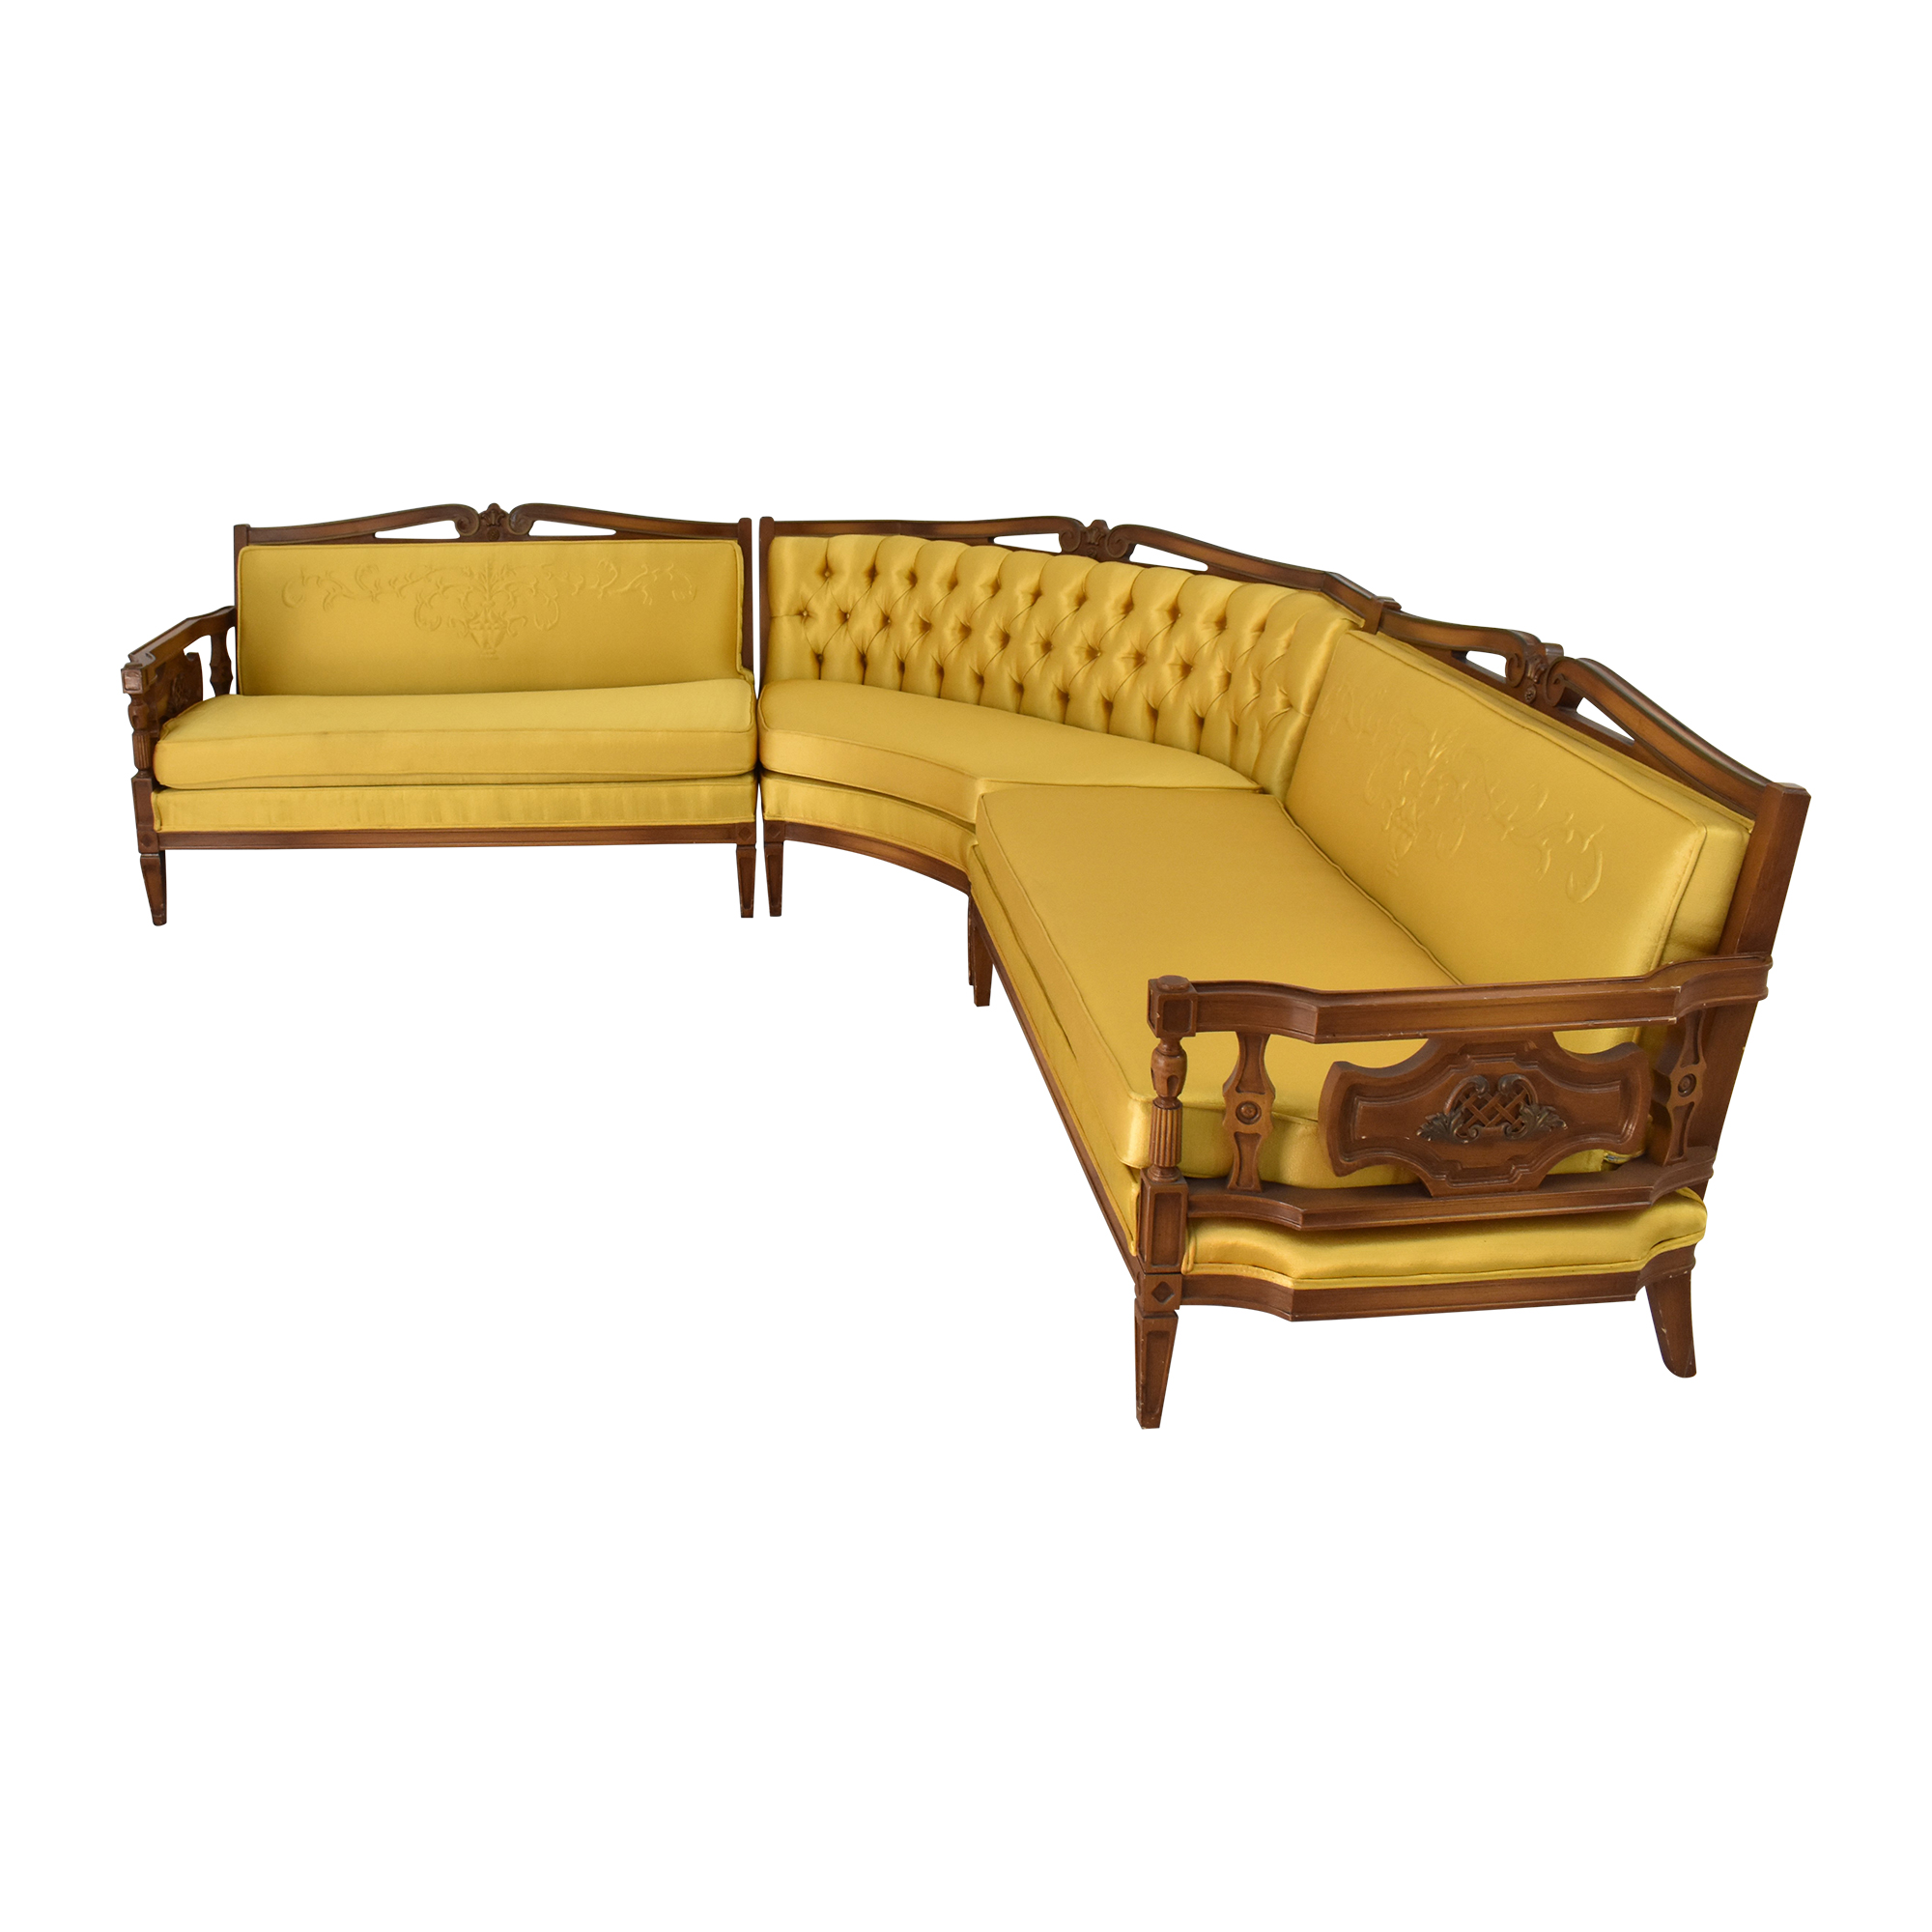 Vintage Style Sectional Sofa used